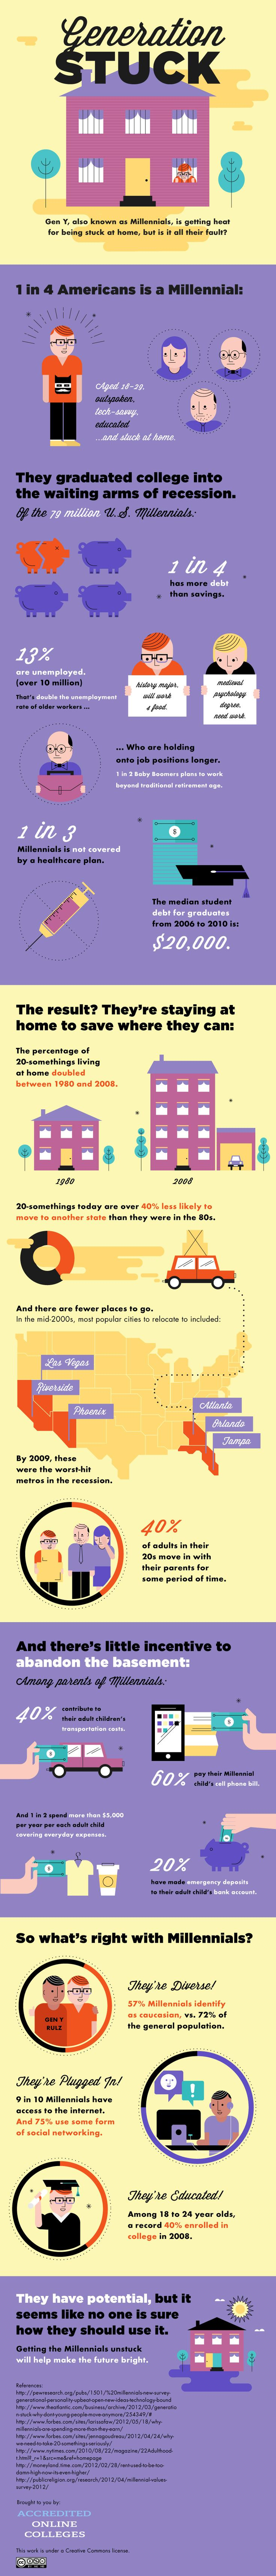 Generation Stuck Infographic (from Accredited Online Colleges)Online Colleges, Positive Age, Accreditation Online, Peter Kim, Stuck Infographic, Ministry, Generation Stuck, Baby Boomer, Age Grace